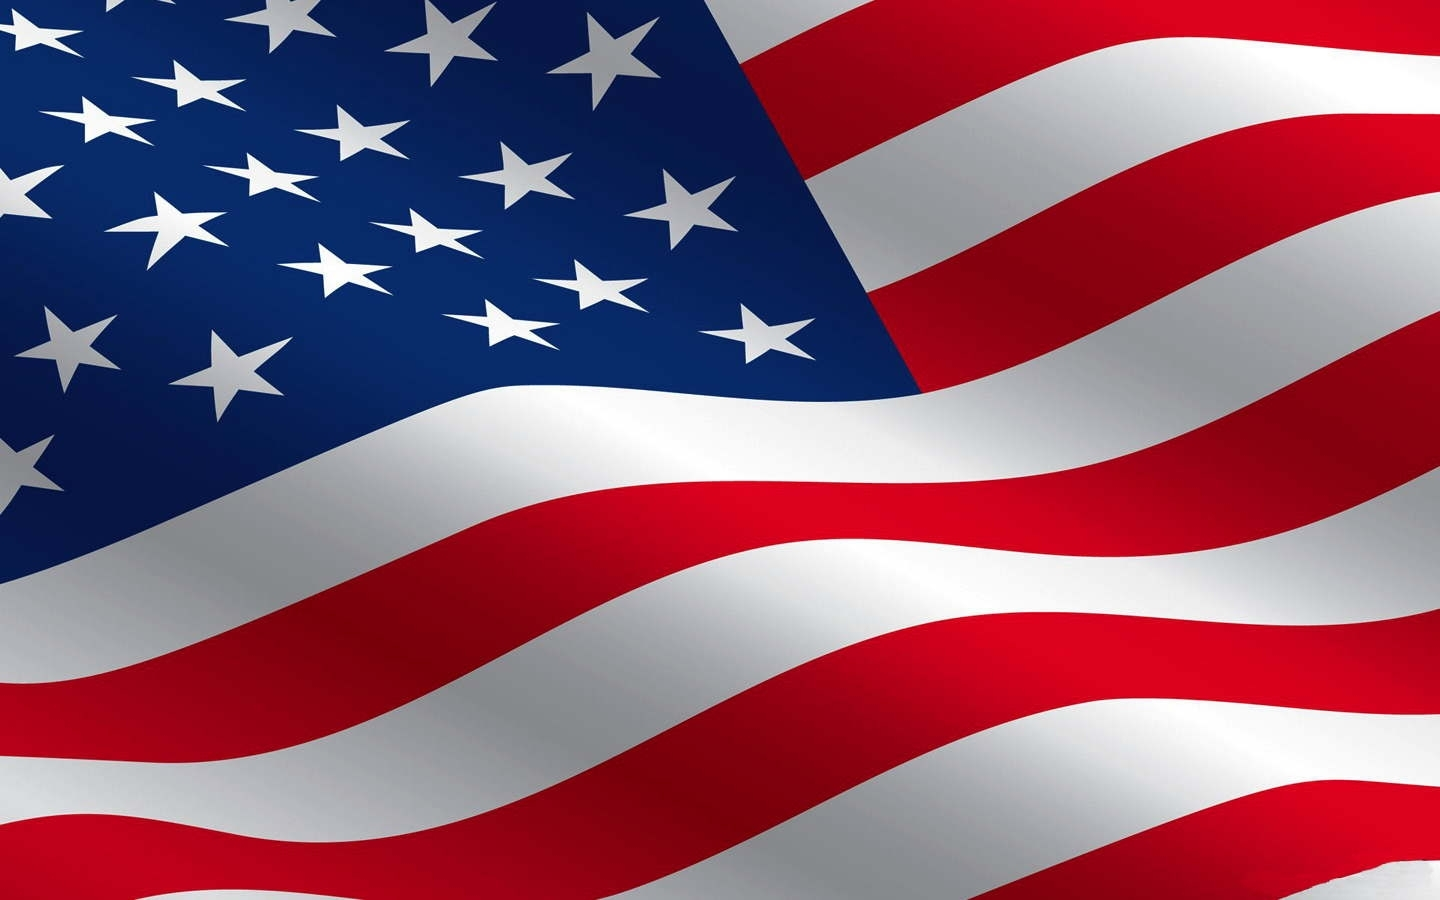 american flag wallpapers - wallpaper cave   images wallpapers